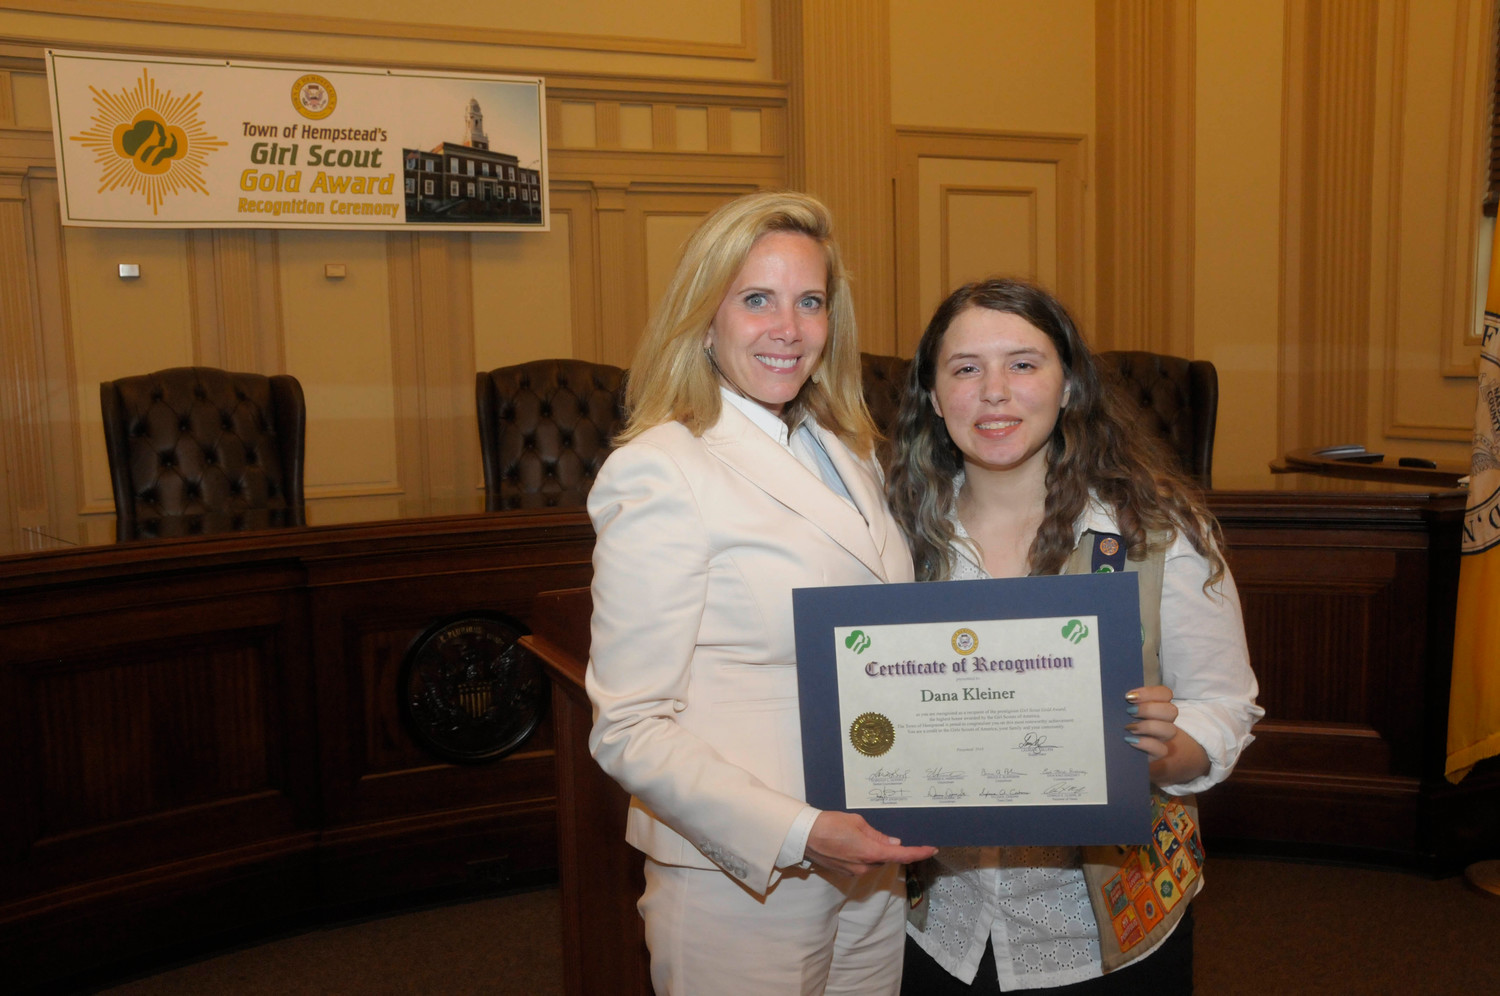 Dana Kleiner is a recipient of the Girl Scouts Gold Award.